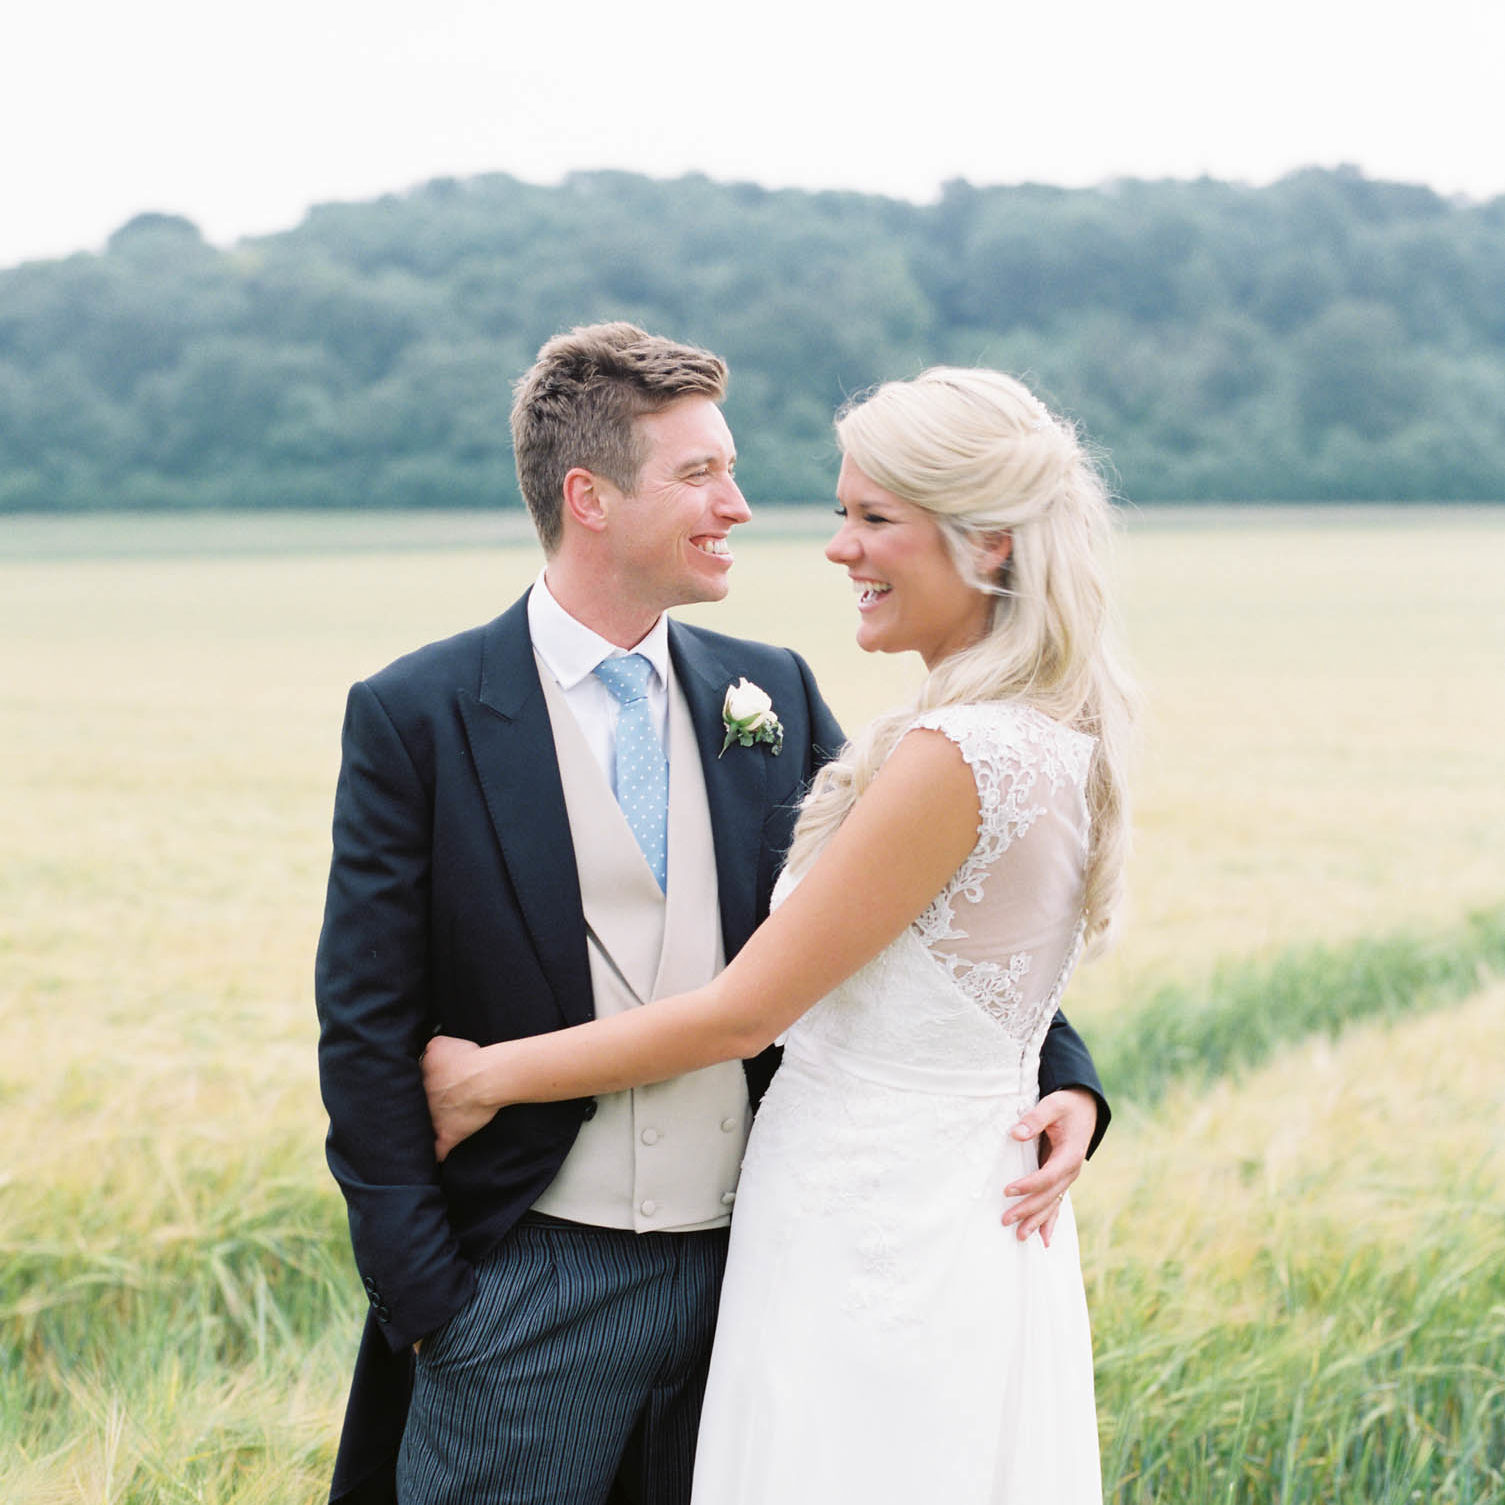 Bride and groom hugging and laughing in wheat field